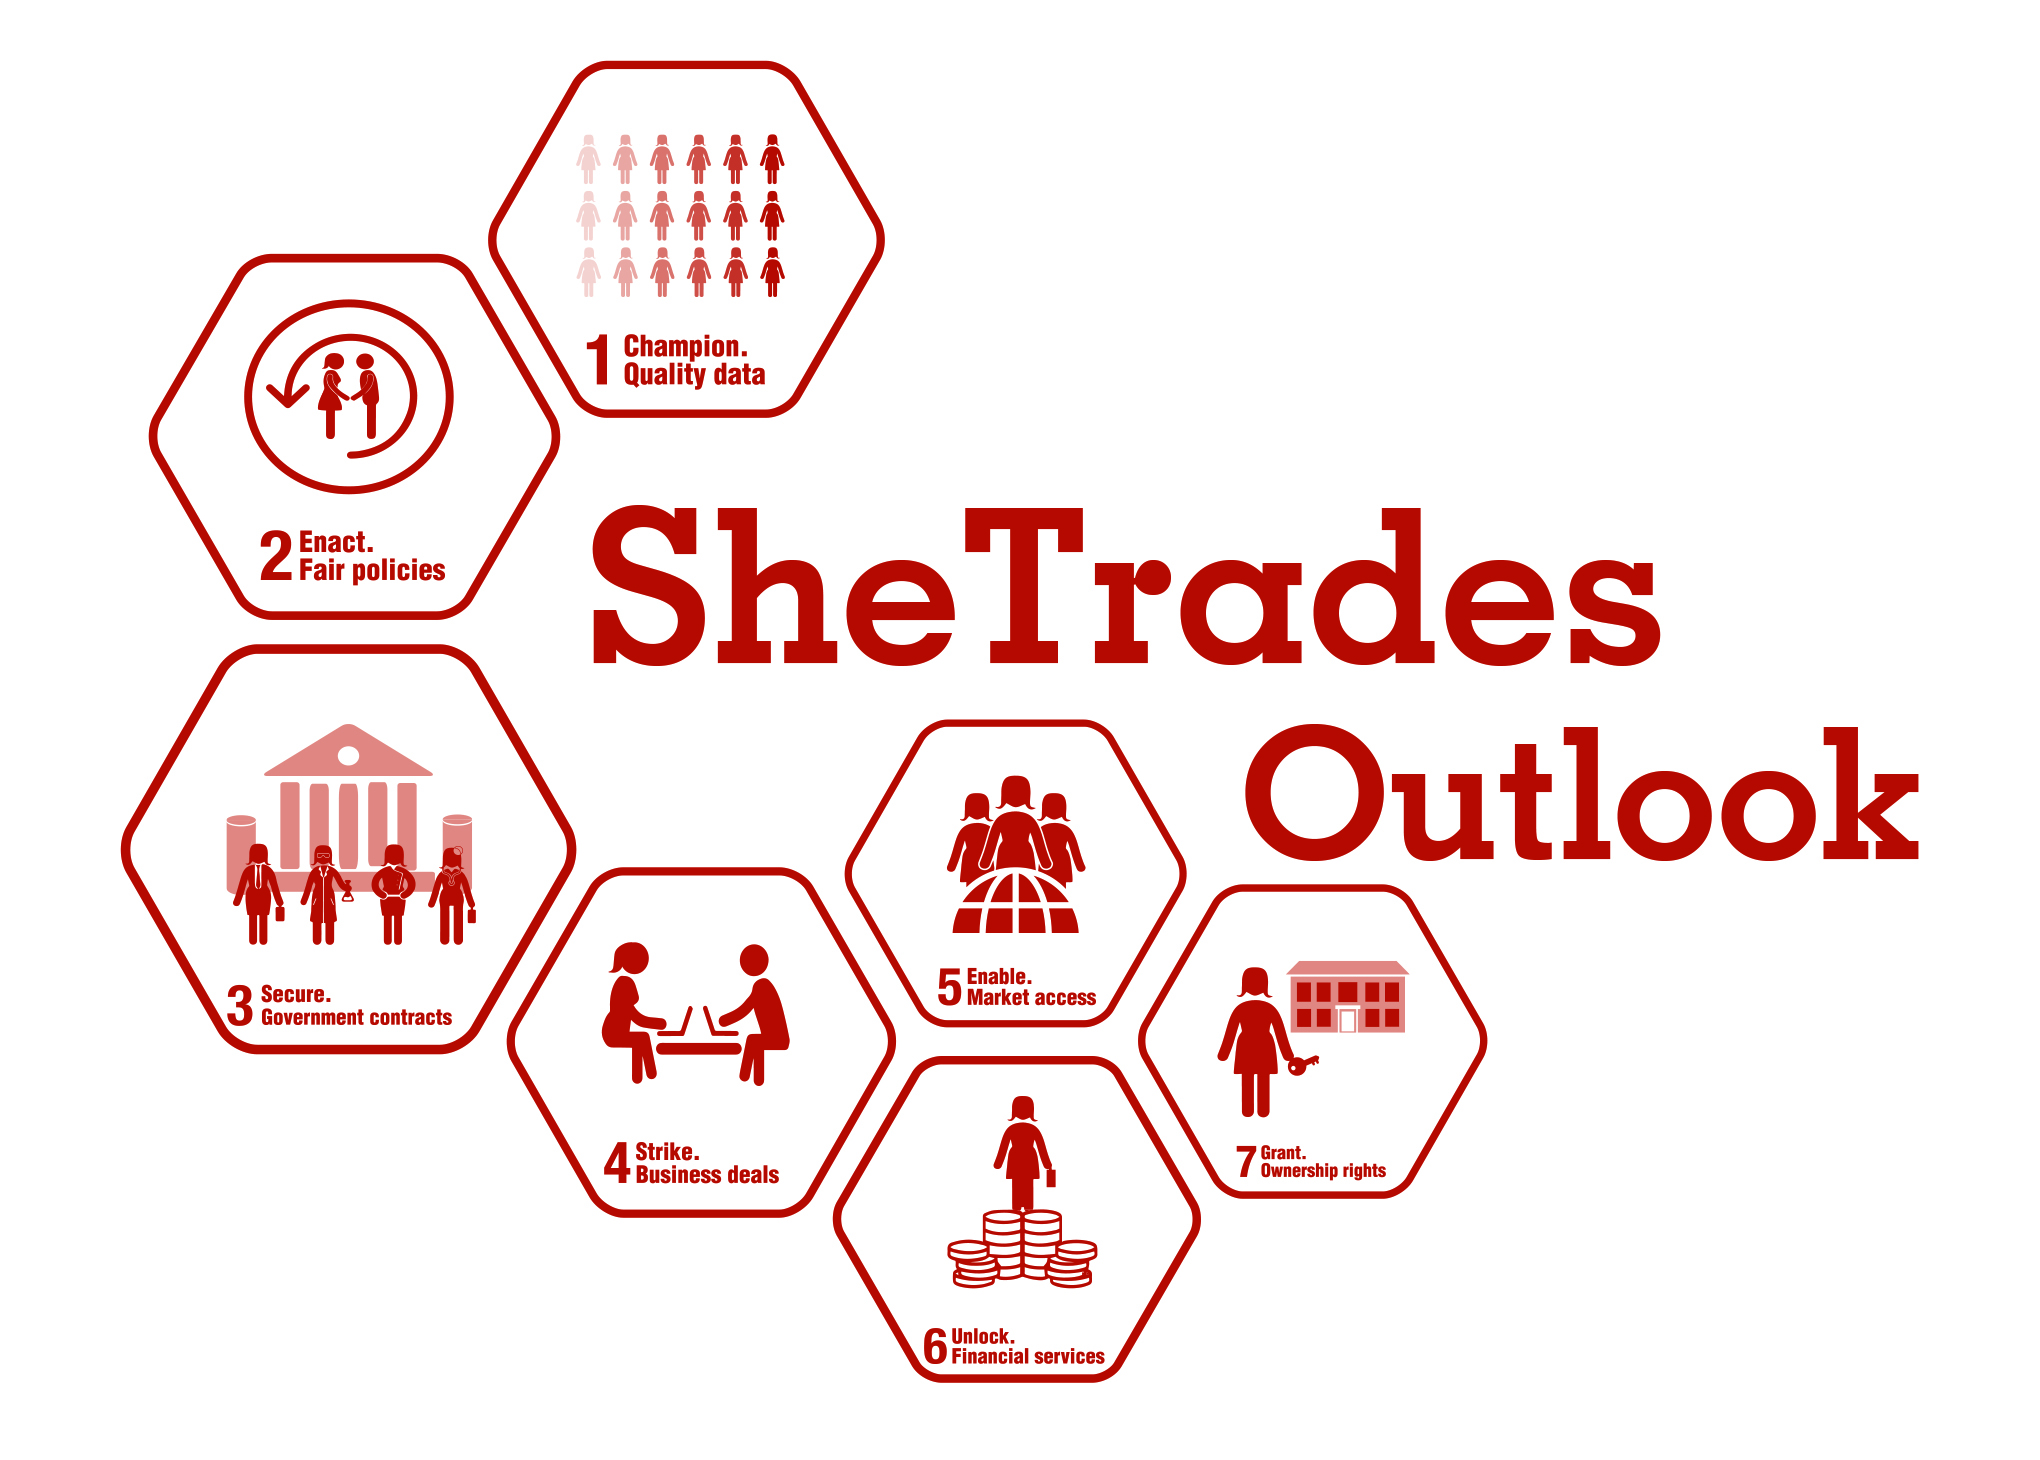 SheTrades Outlook